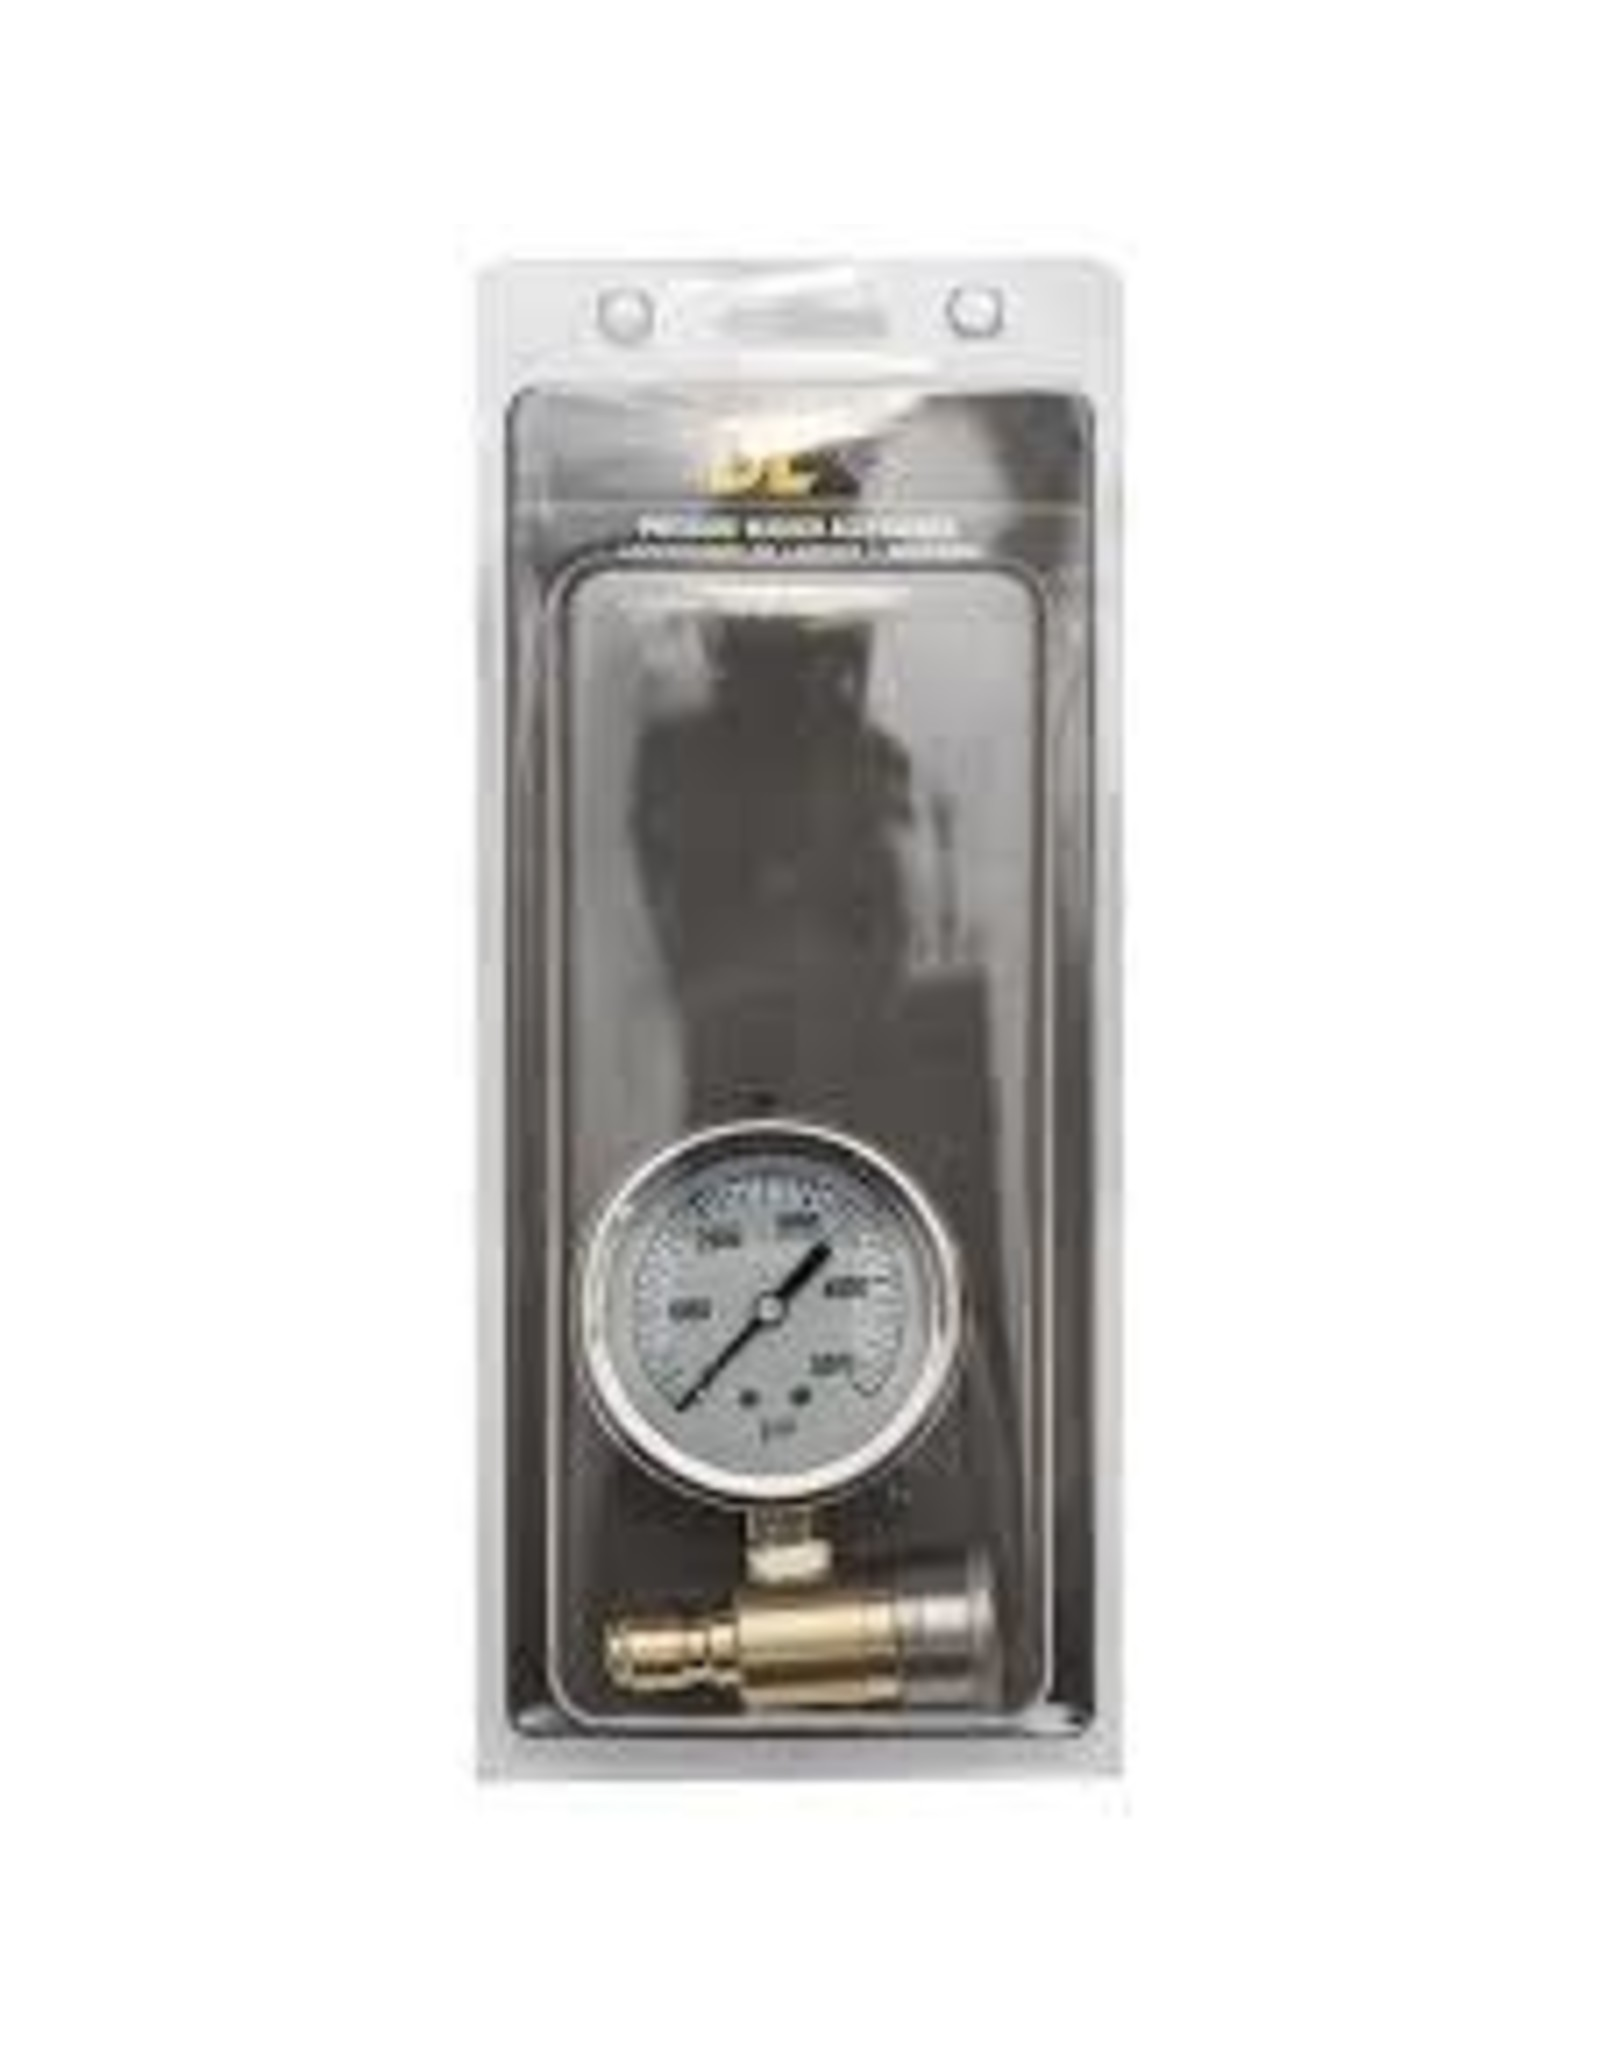 "BE 85.305.001 Pressure Gauge Kit 2.5"" Glycerin Filled"